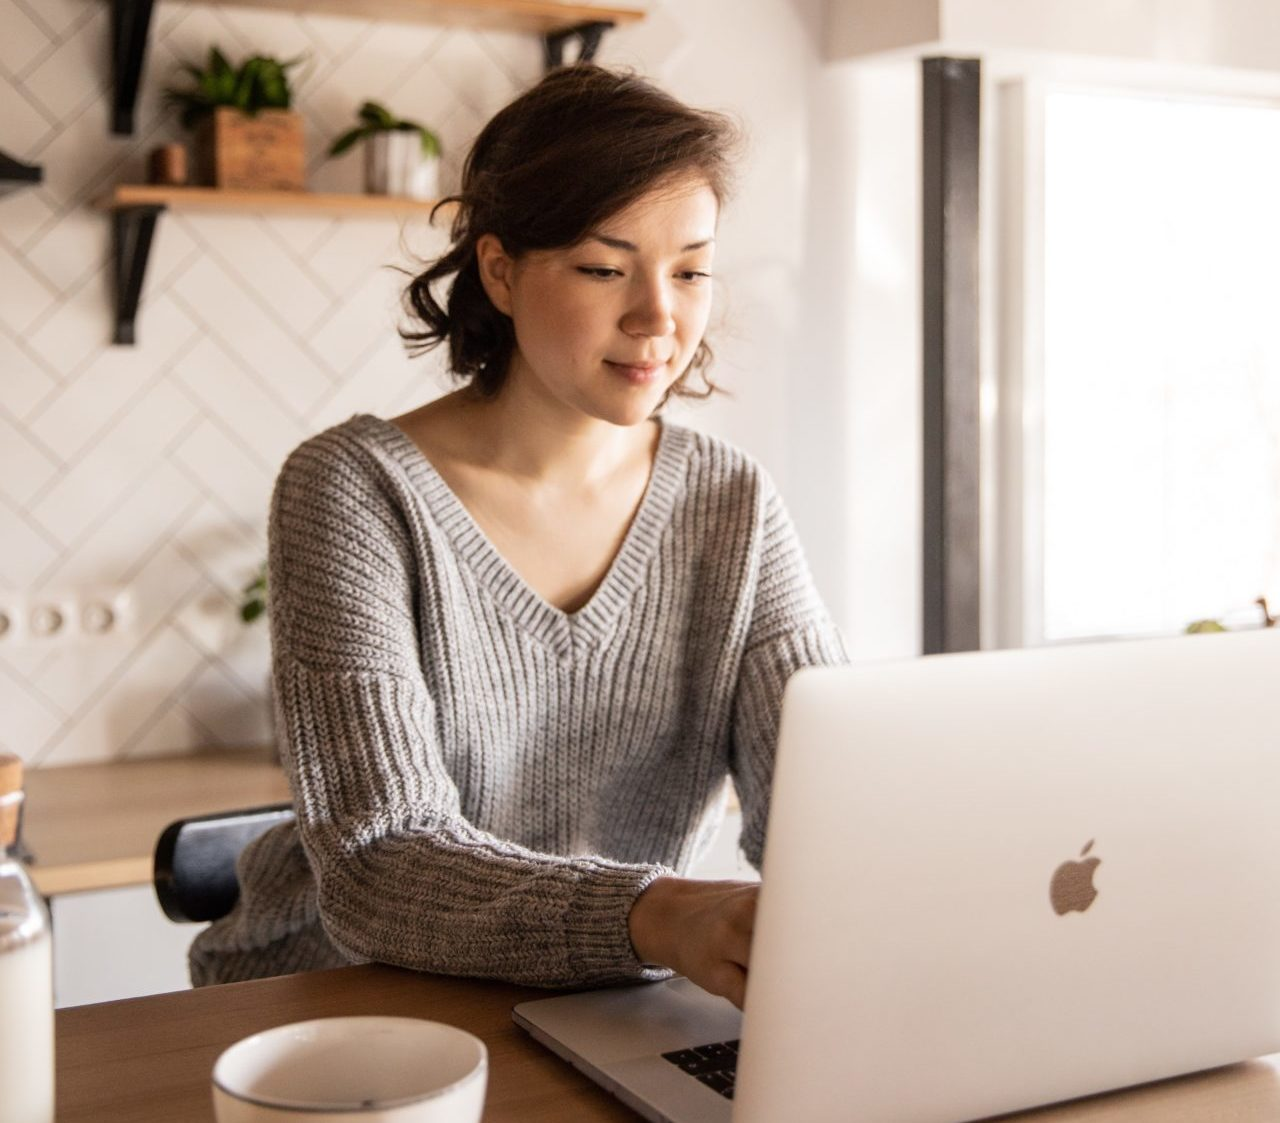 actions to take when searching for a job